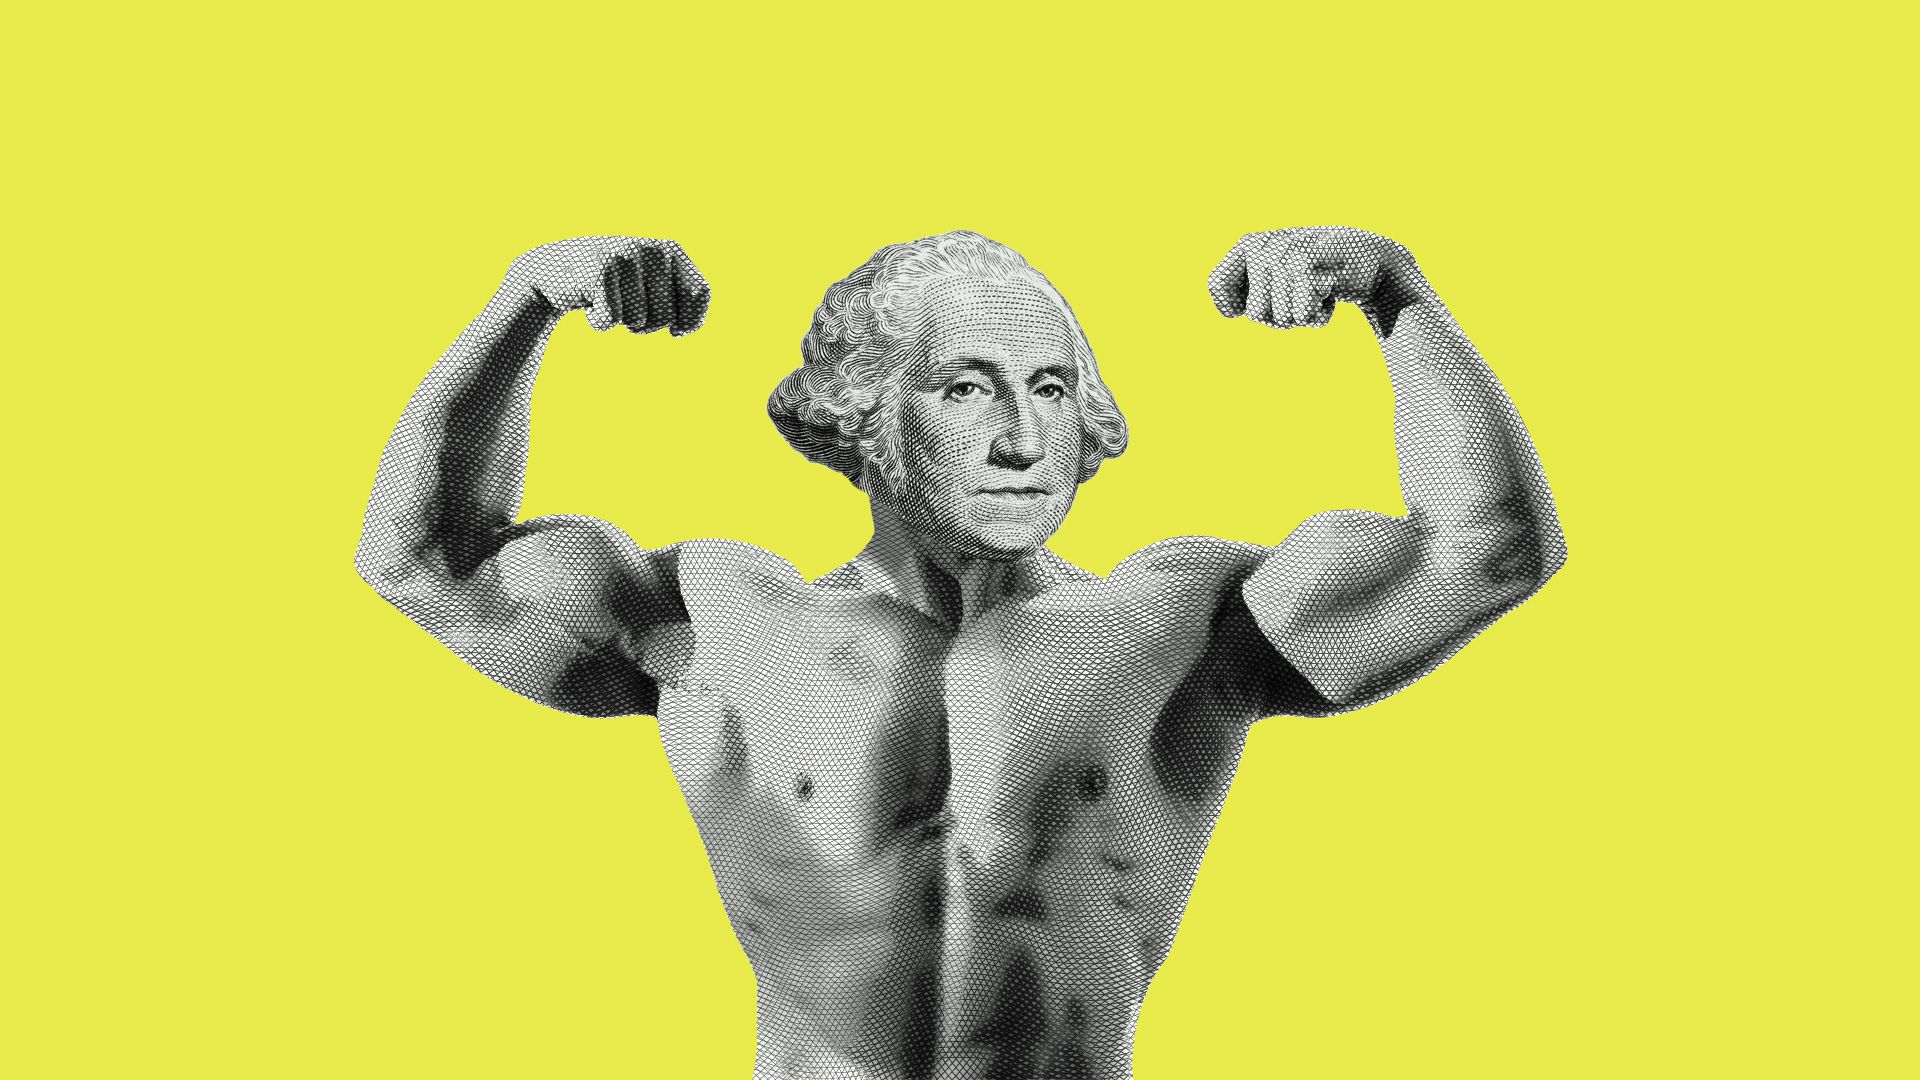 A flexing George Washington